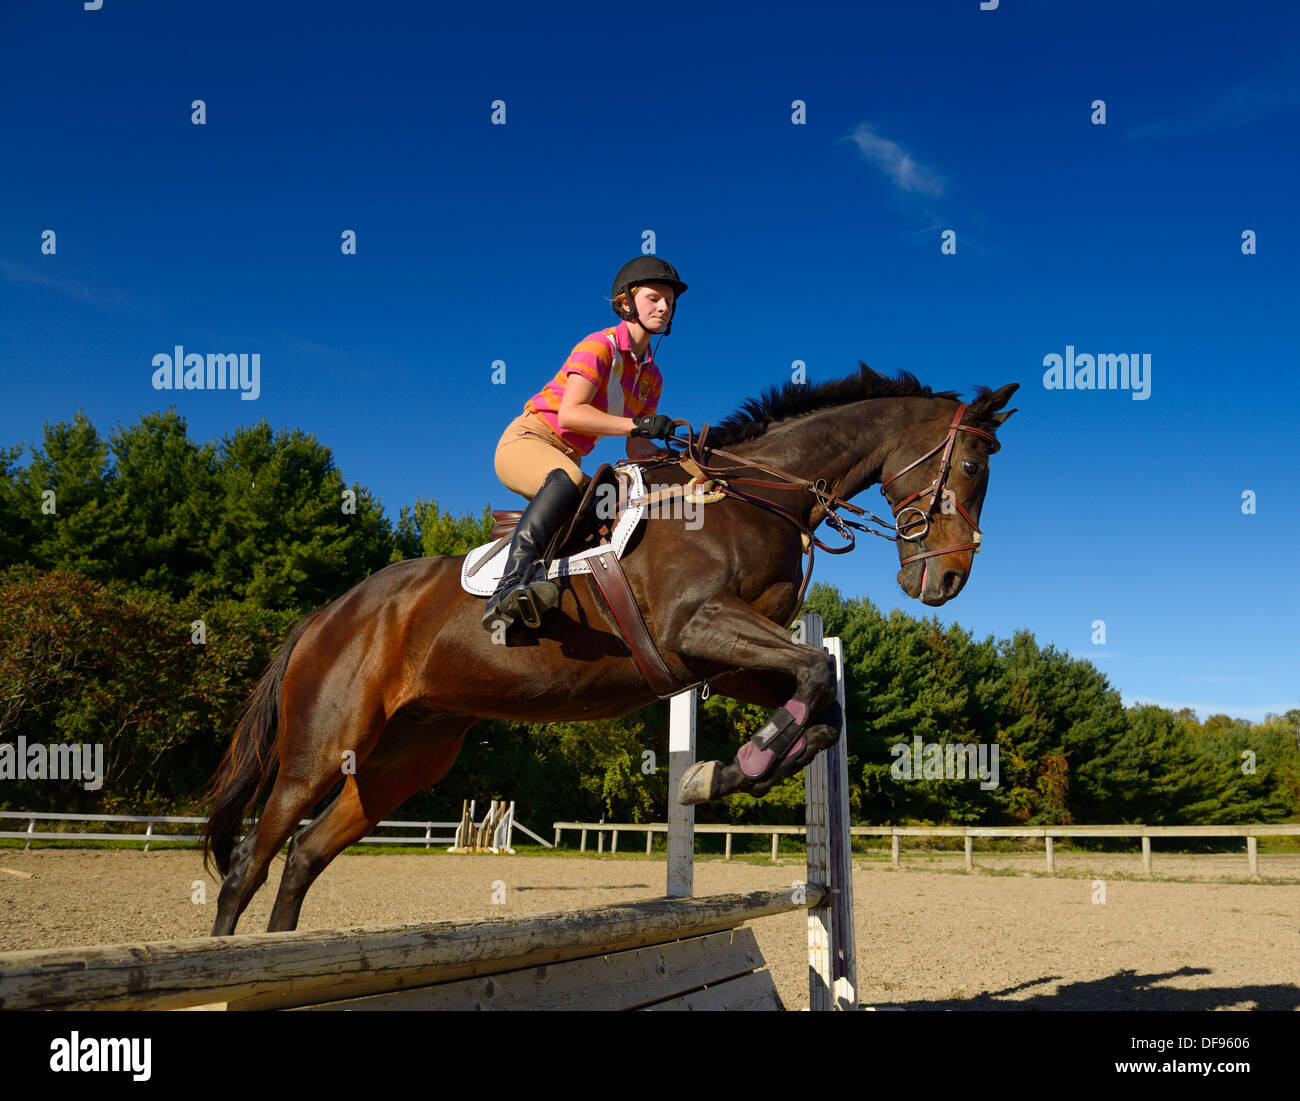 Young Female Rider Jumping An Oxer Hurdle On A Bay Thoroughbred Stock Photo Alamy